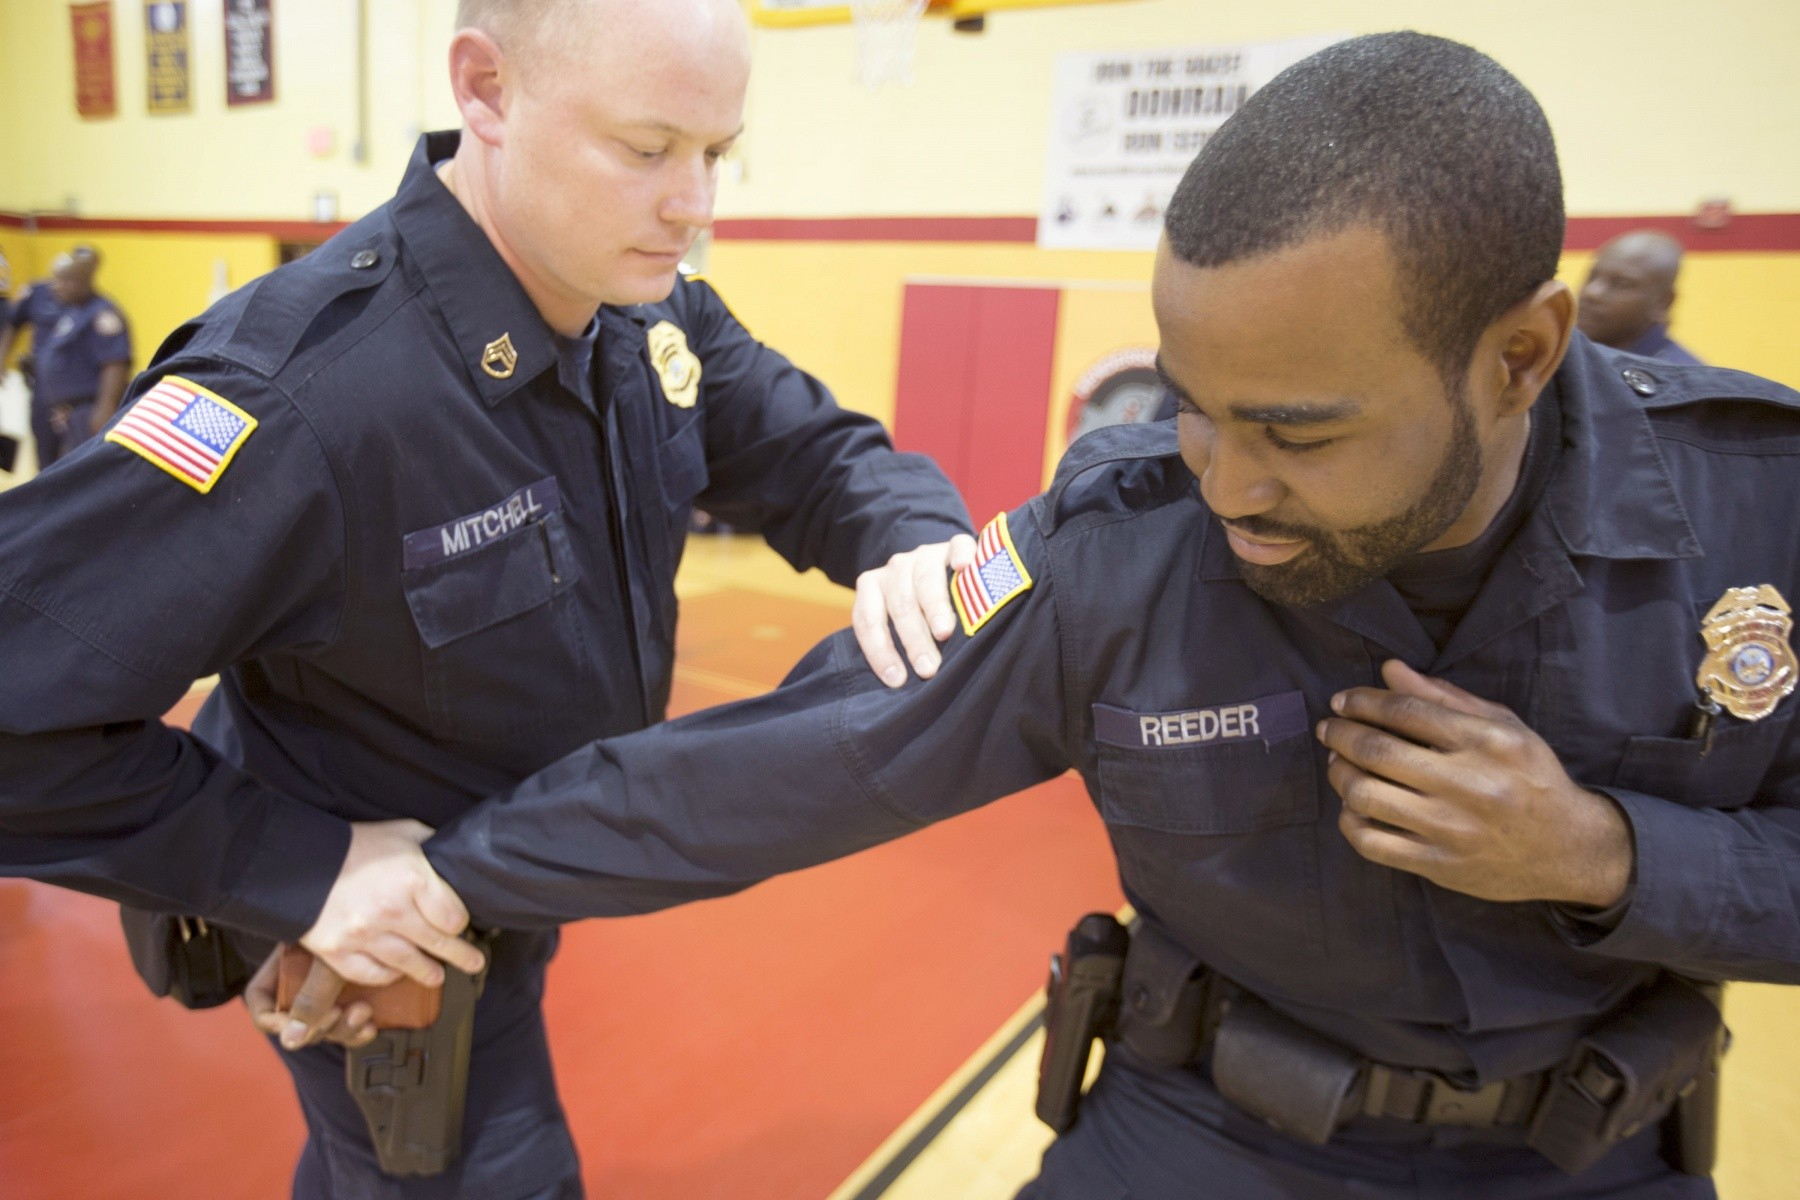 Joint base law enforcement undergo tough training to